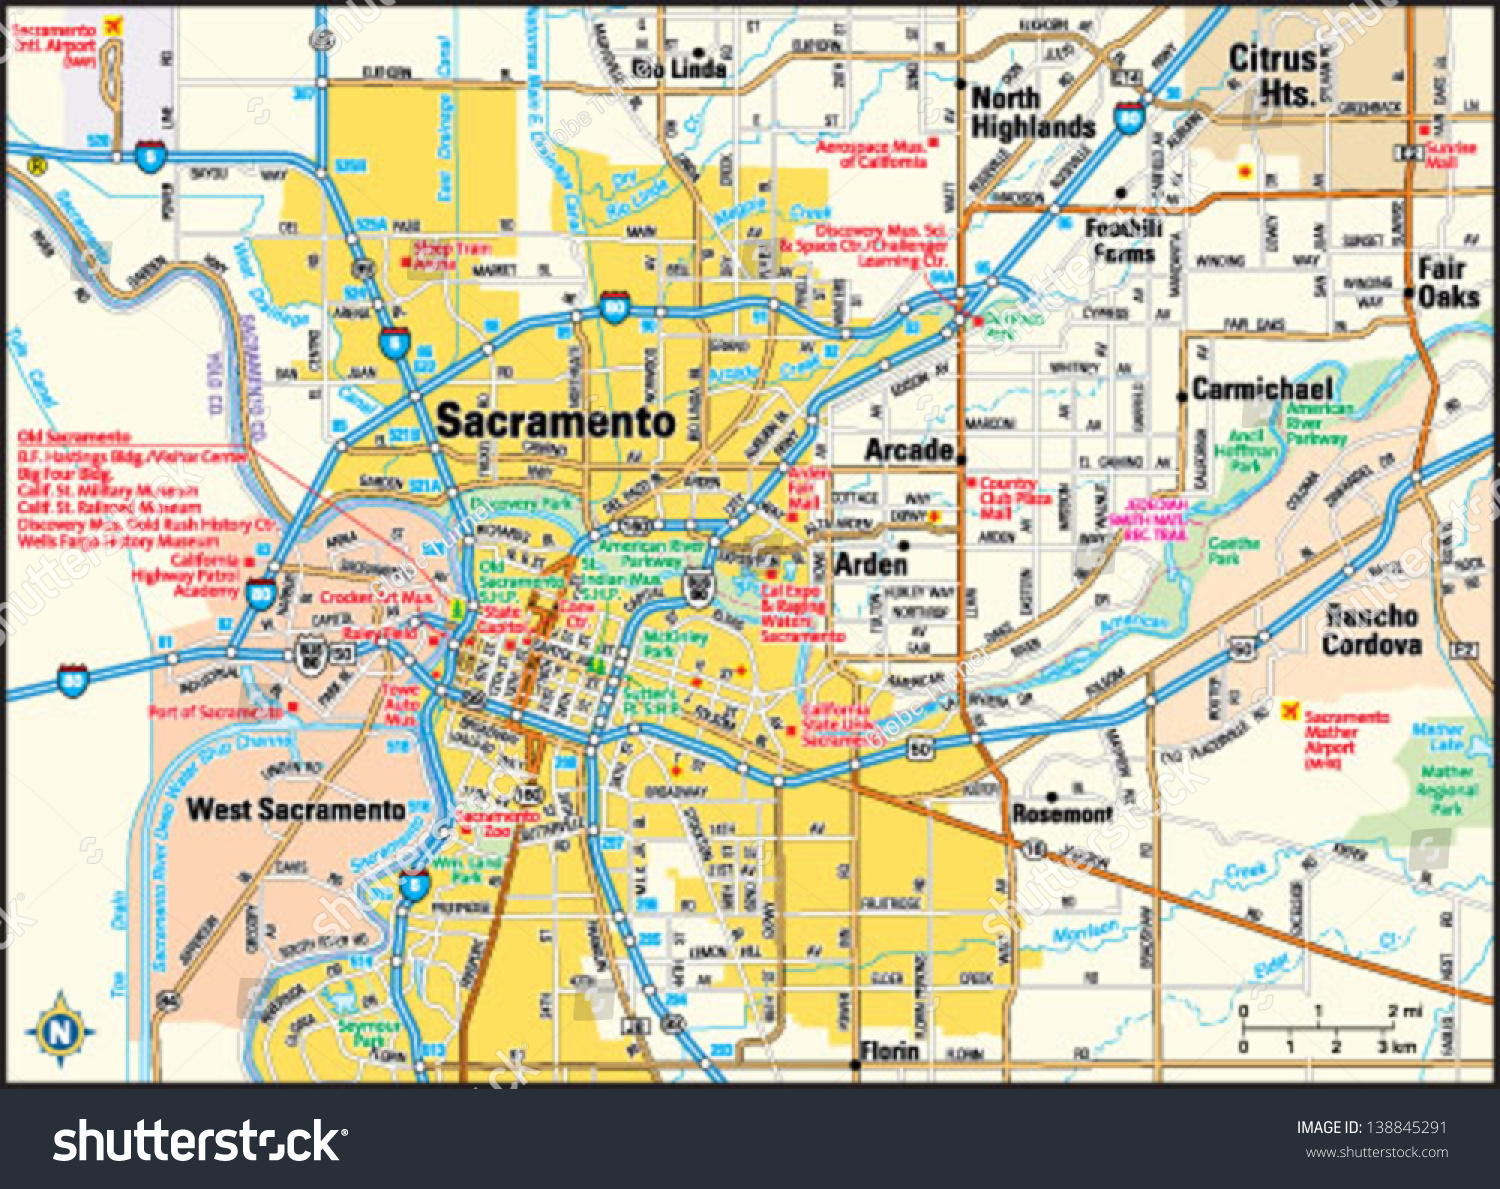 show me a map of oklahoma with Sacramento California Area Map 138845291 on Us Skylines South Central also Candelabra Wedding Rental Equipment further Photos Massive Alligator Snapping Turtle Reportedly Caught Alabama together with Content furthermore ghosttowngallery.